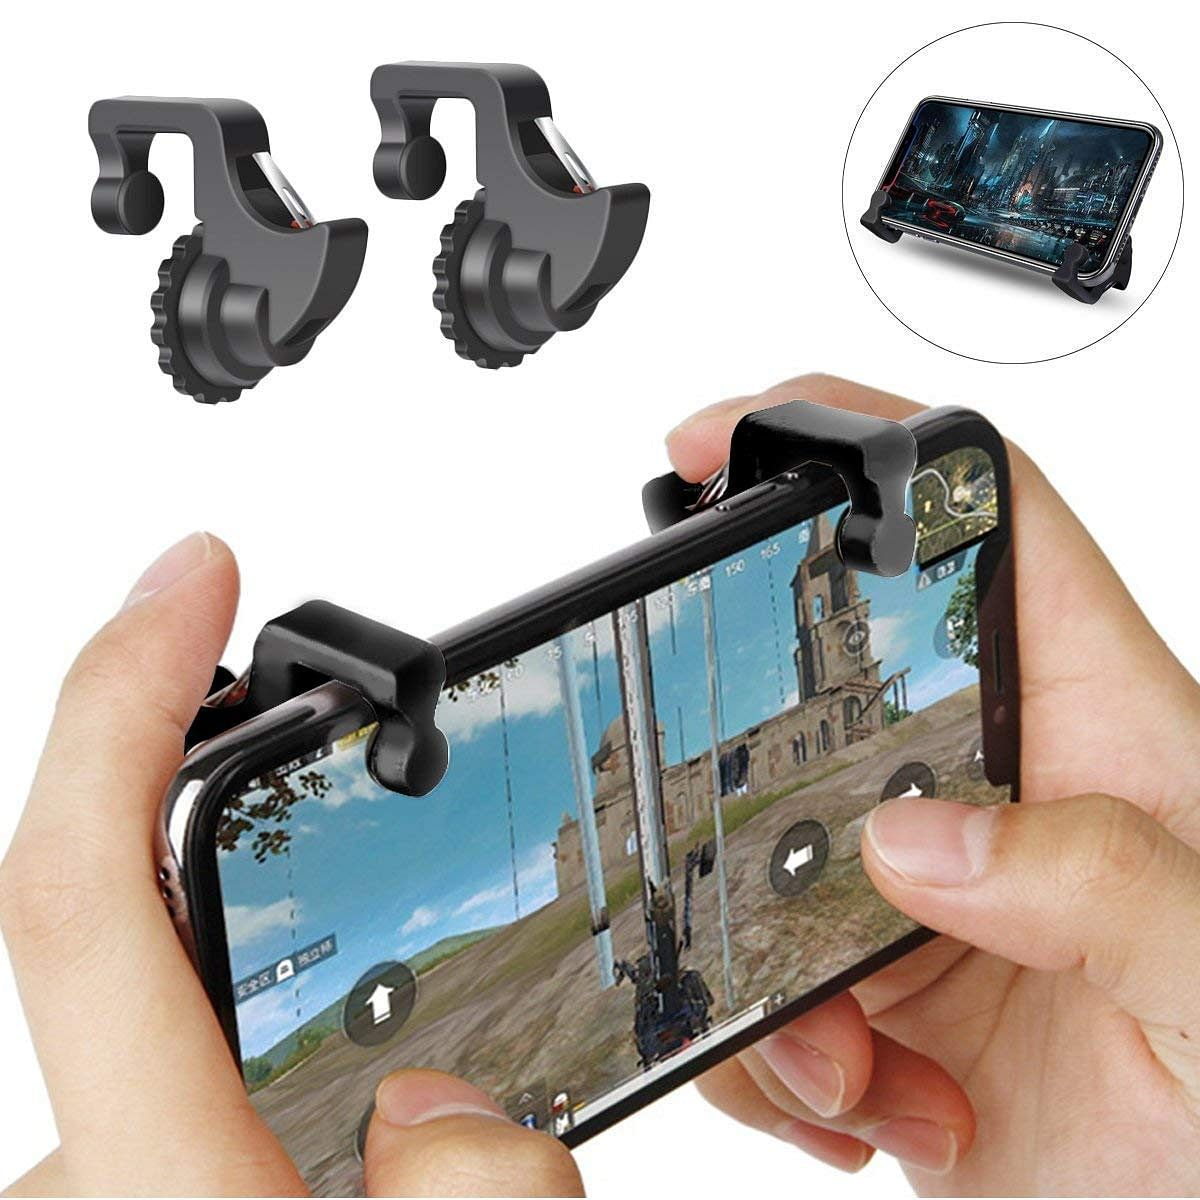 Mobile gaming triggers are the most economical gaming accessory you can buy.